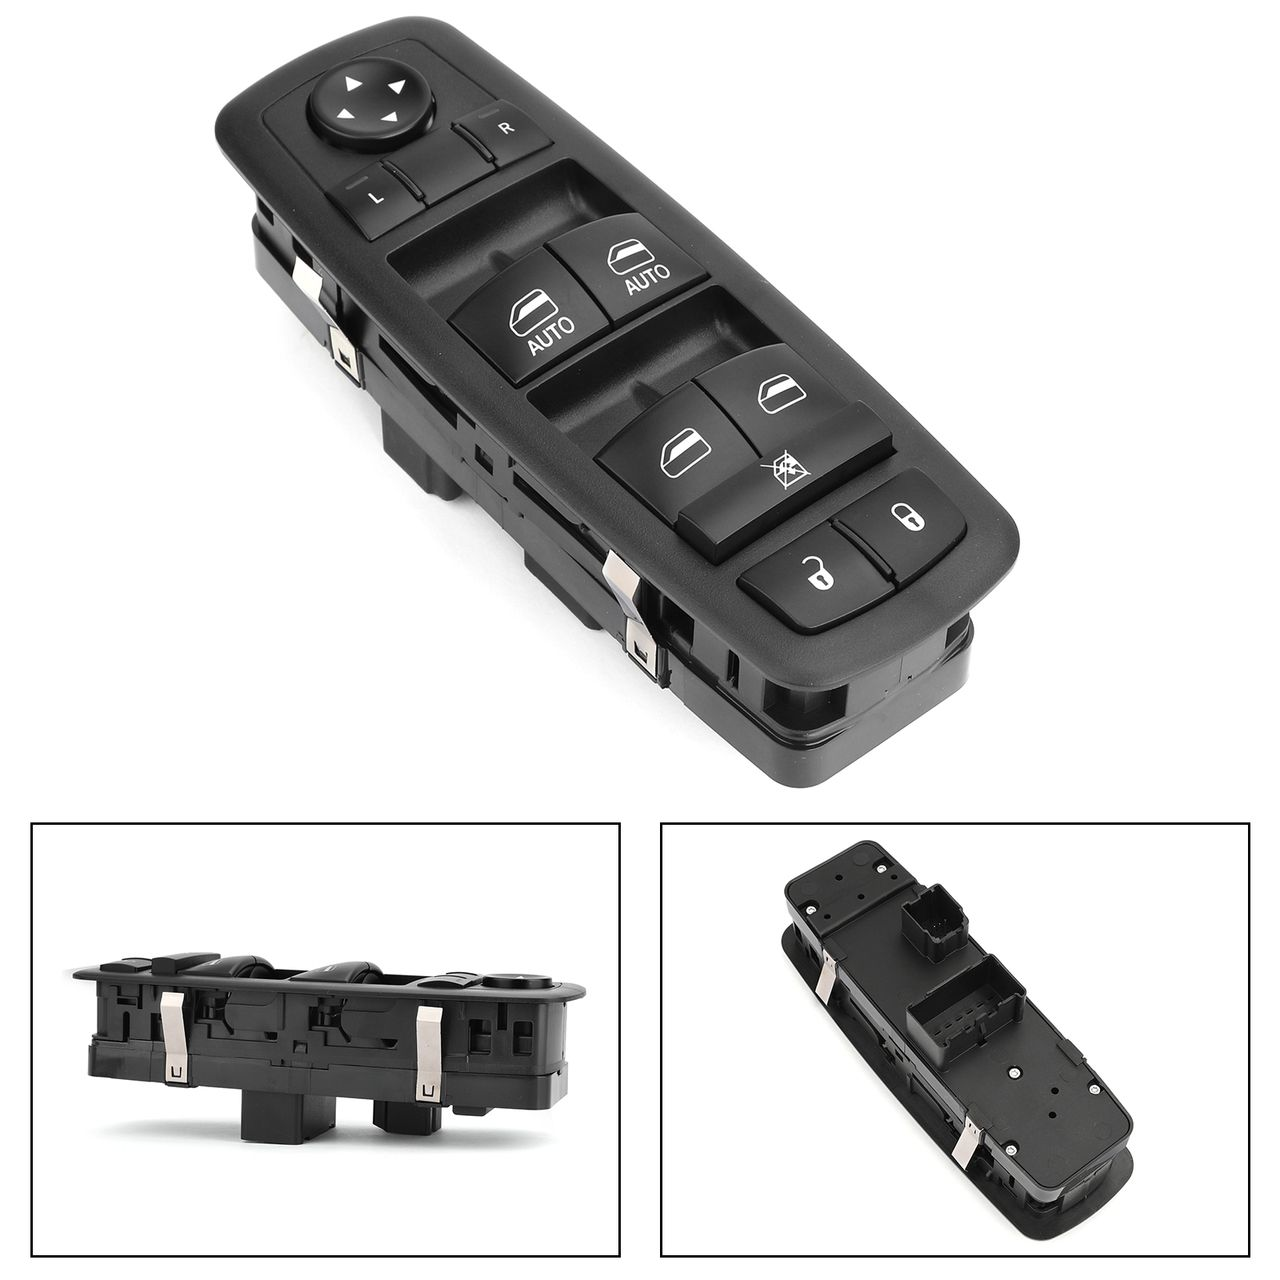 68110871aa Master Power Window Lift Switch For Chrysler Town